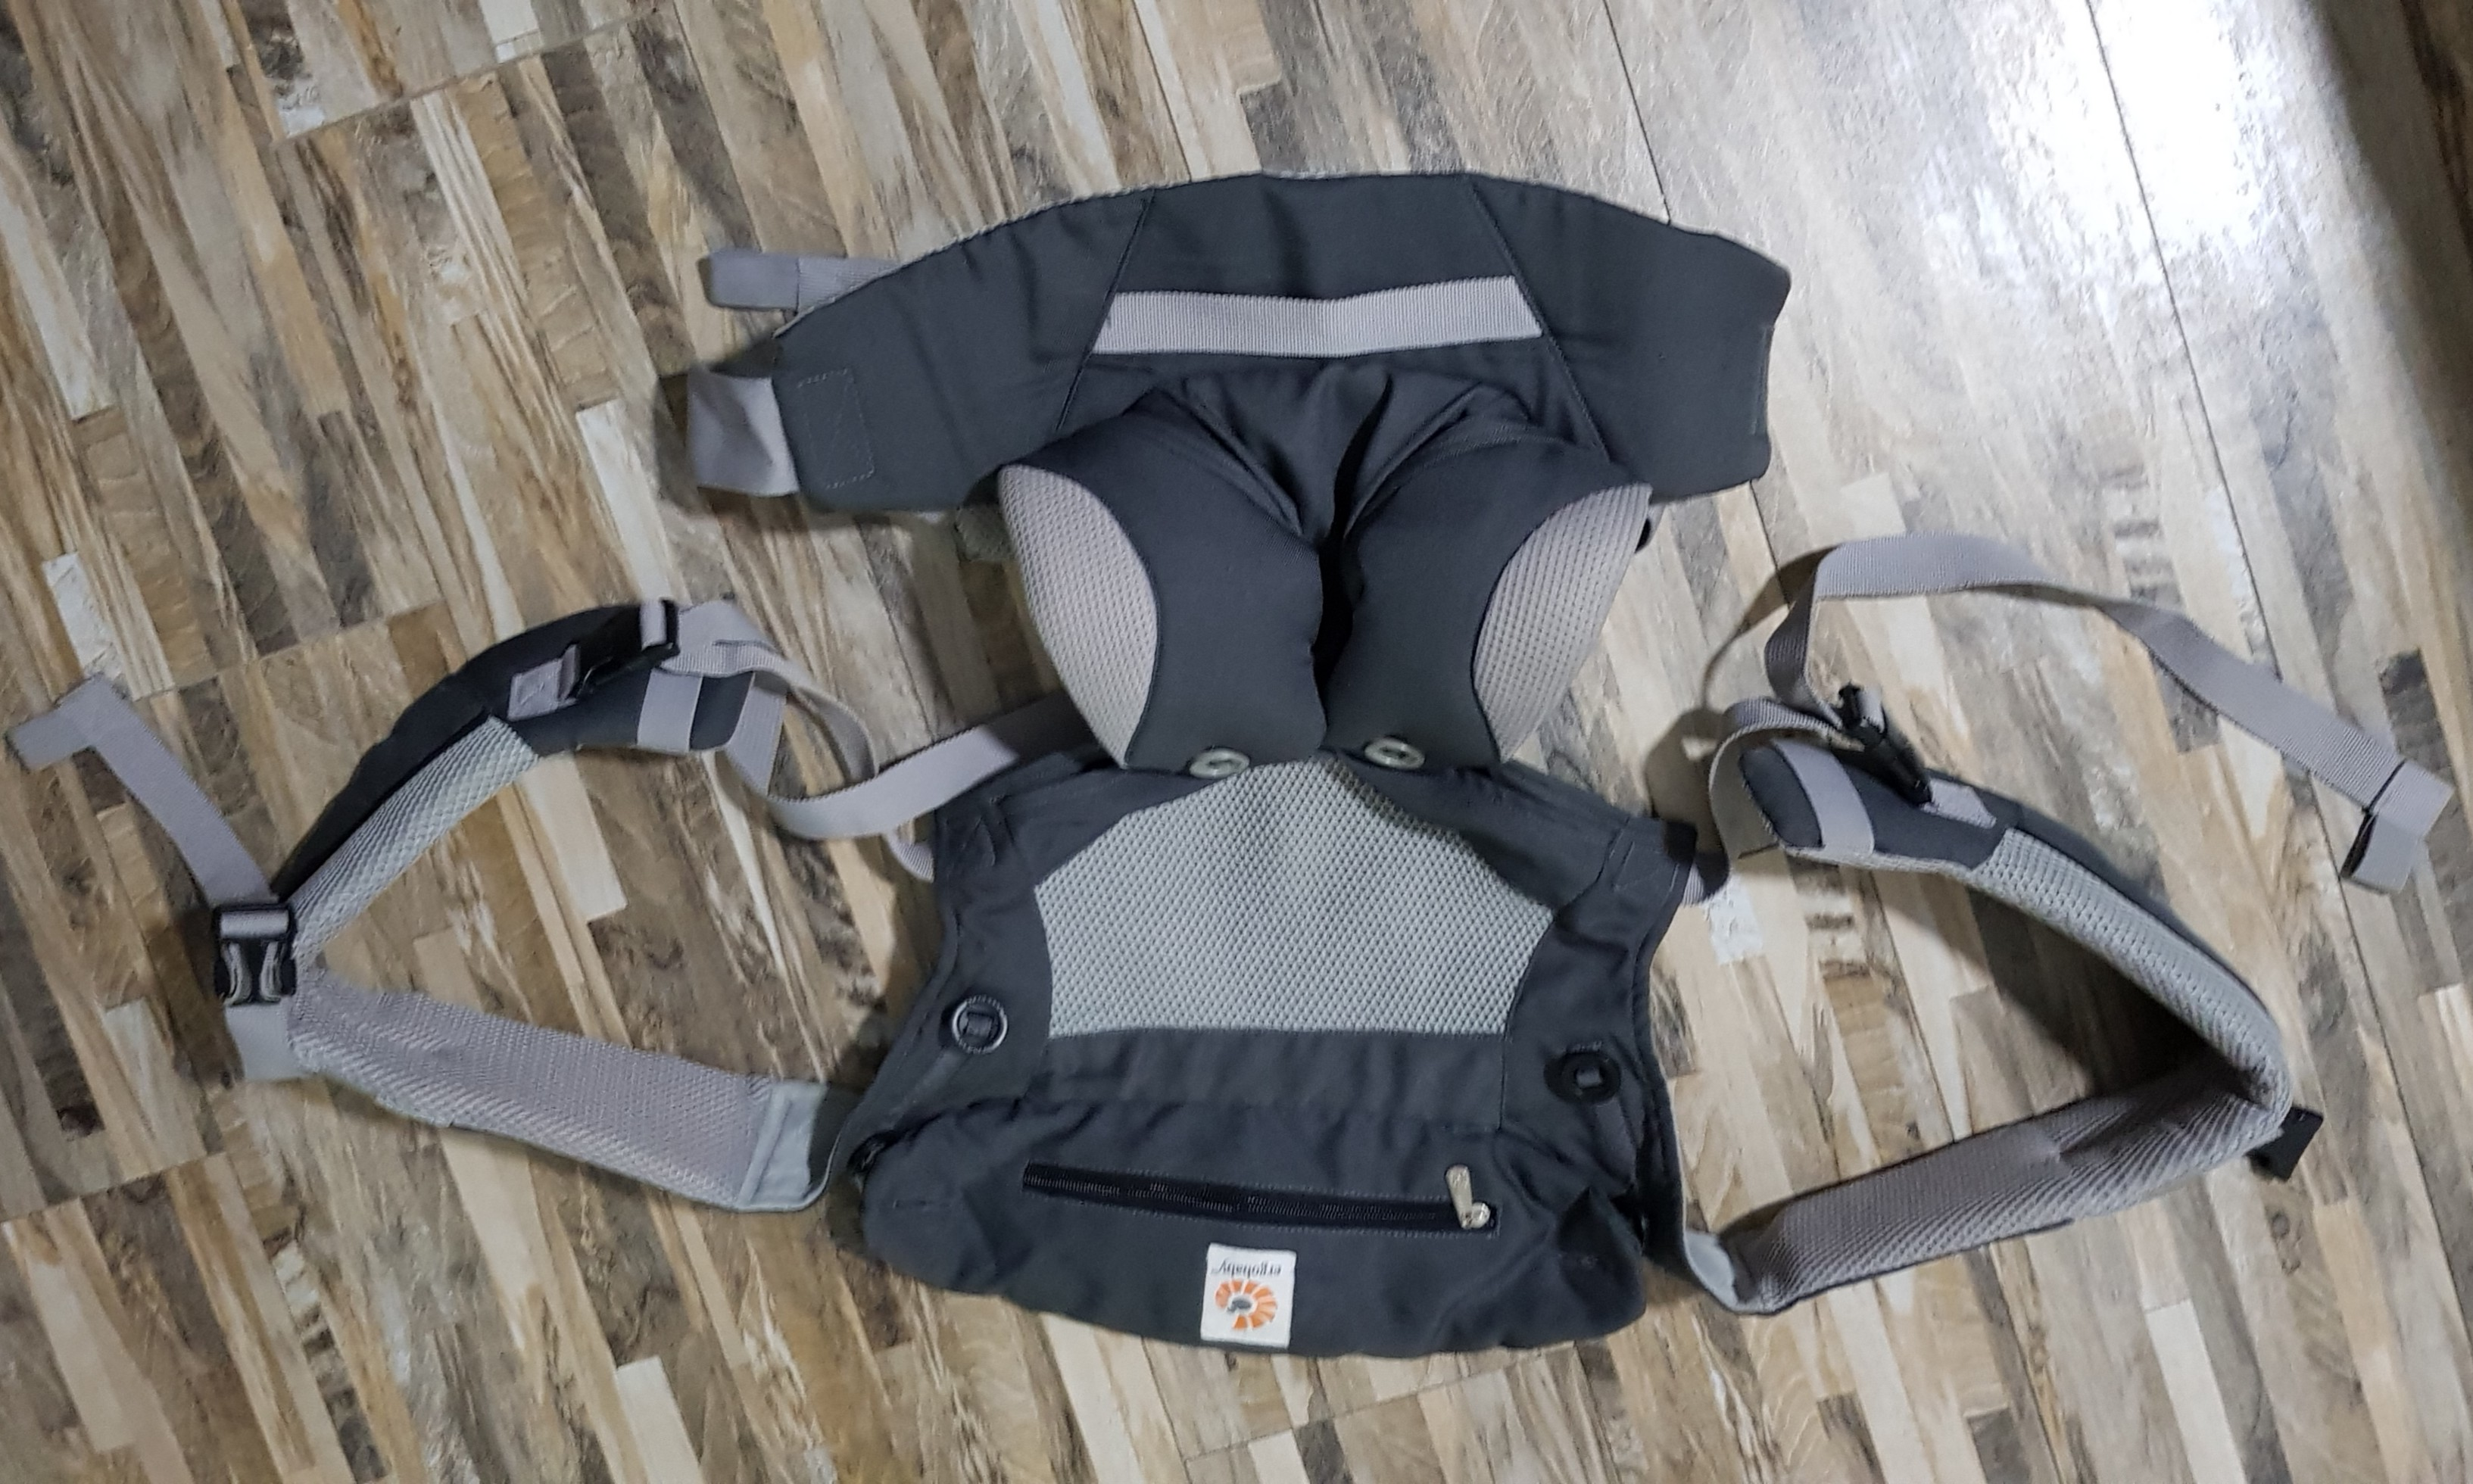 7d6041eff30 Preloved   Ergobaby 360 Baby Carrier  Cool Air Mesh - Carbon Grey ...